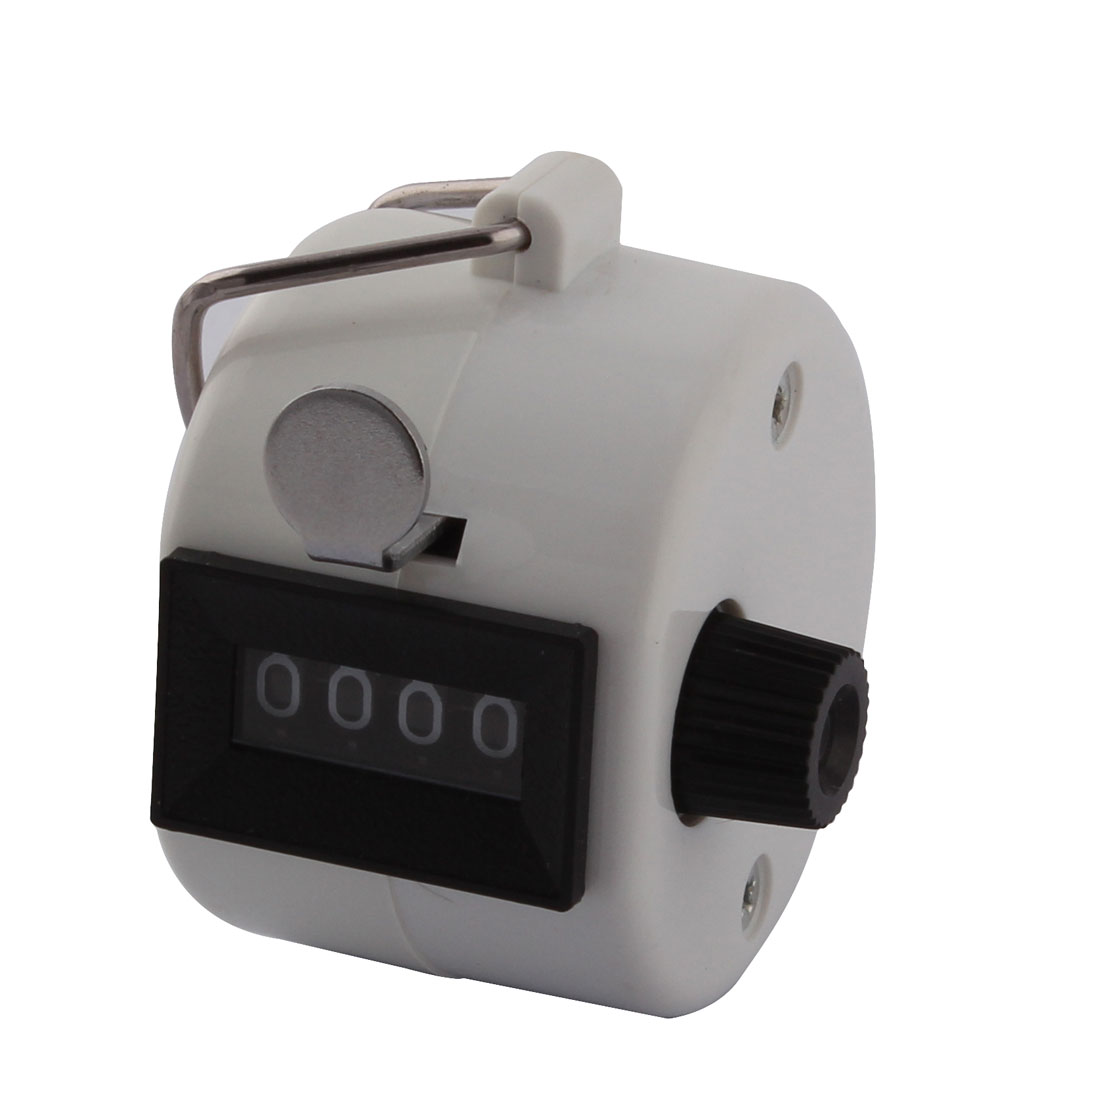 Hand Held 4 Digits Number School Sport Golf Tally Click Palm Counter White